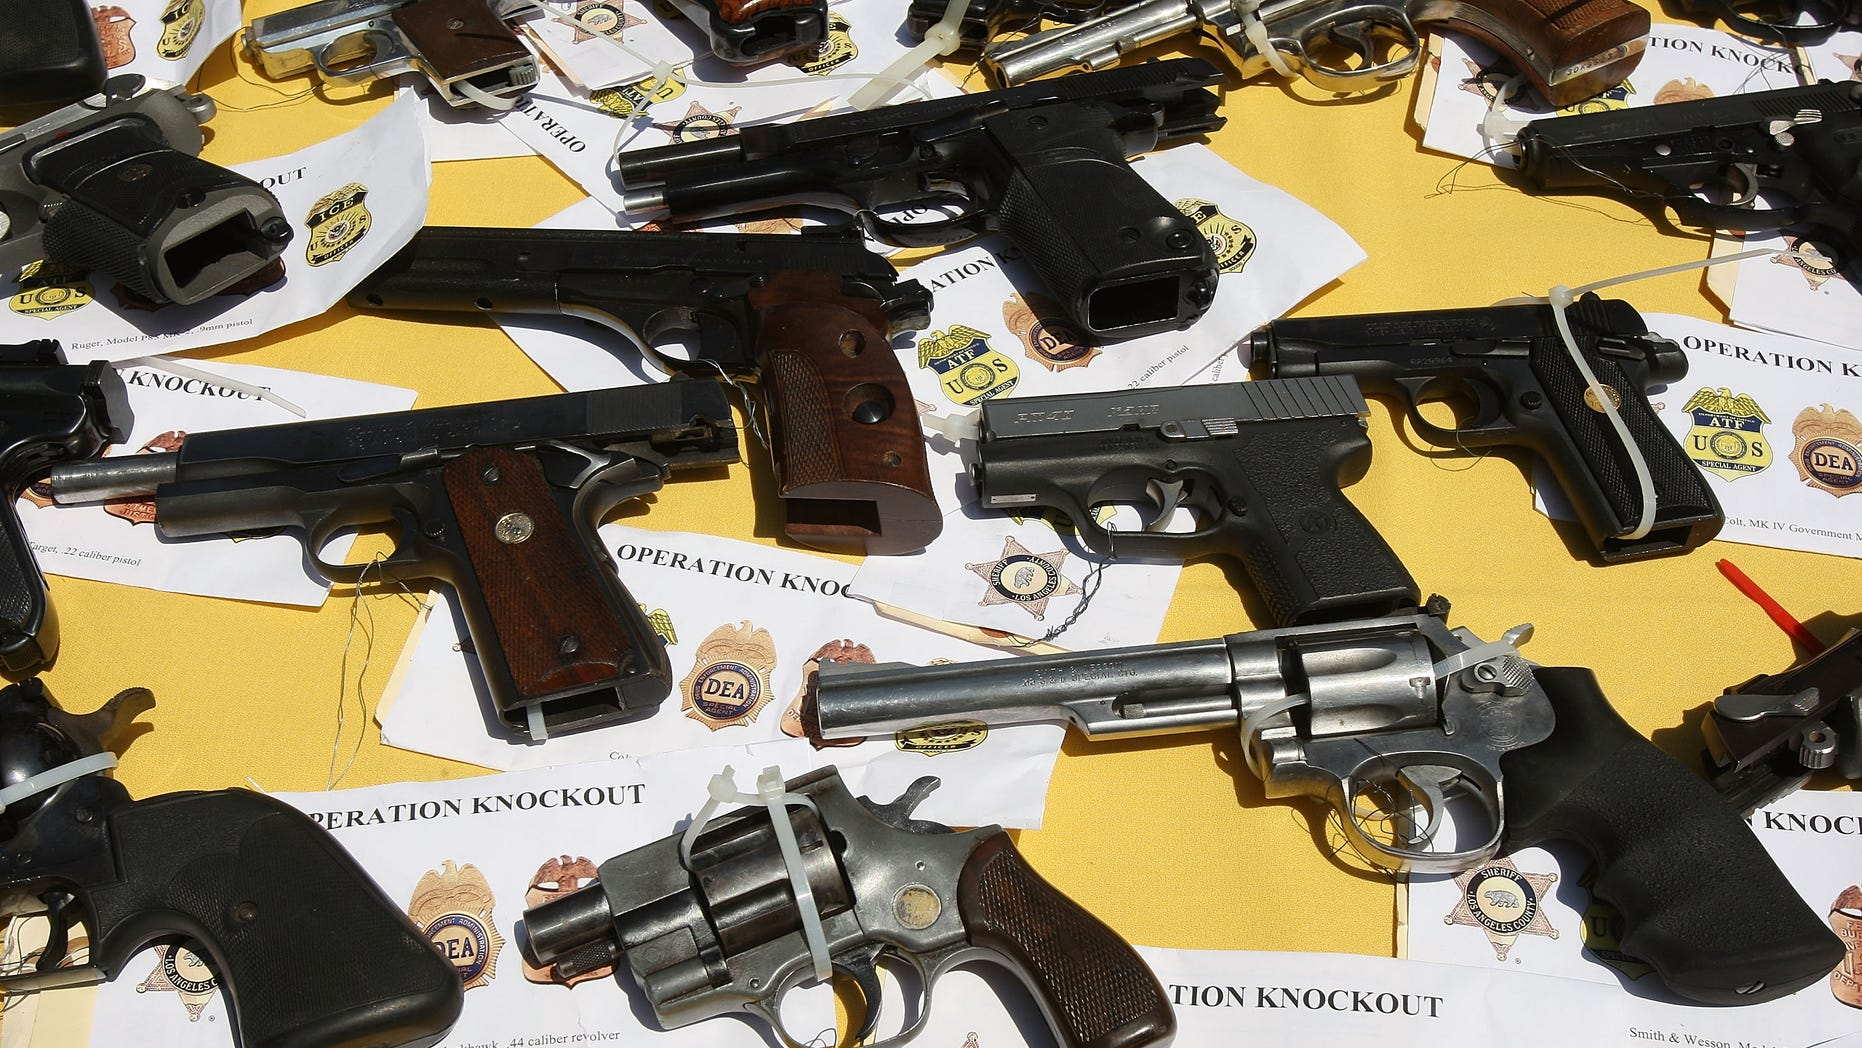 LAKEWOOD, CA - MAY 21:  Some of about 125 weapons confiscated during what the federal authorities say is the largest gang takedown in United States history are displayed at a press conference to announce the arrests of scores of alleged gang members and associates on federal racketeering and drug-trafficking charges on May 21, 2009 in the Los Angeles-area community of Lakewood, California. 147 people were indicted in the case involving racially motivated attacks on African-Americans and law enforcement officers. Operation Knockout is the latest of several investigations that found gangs engaged in race-based violence. Two years ago, a Latino gang was charged with waging a violent campaign to drive blacks out of a Los Angeles-area neighborhood that resulted in 20 homicides. Last year, another Latino gang was accused of targeting blacks and killing 14-year-old Cheryl Green, whose death became a community rallying point. In 2006, Avenues gang members Latinos were convicted of assaults and killings of blacks in the 1990s.  (Photo by David McNew/Getty Images)